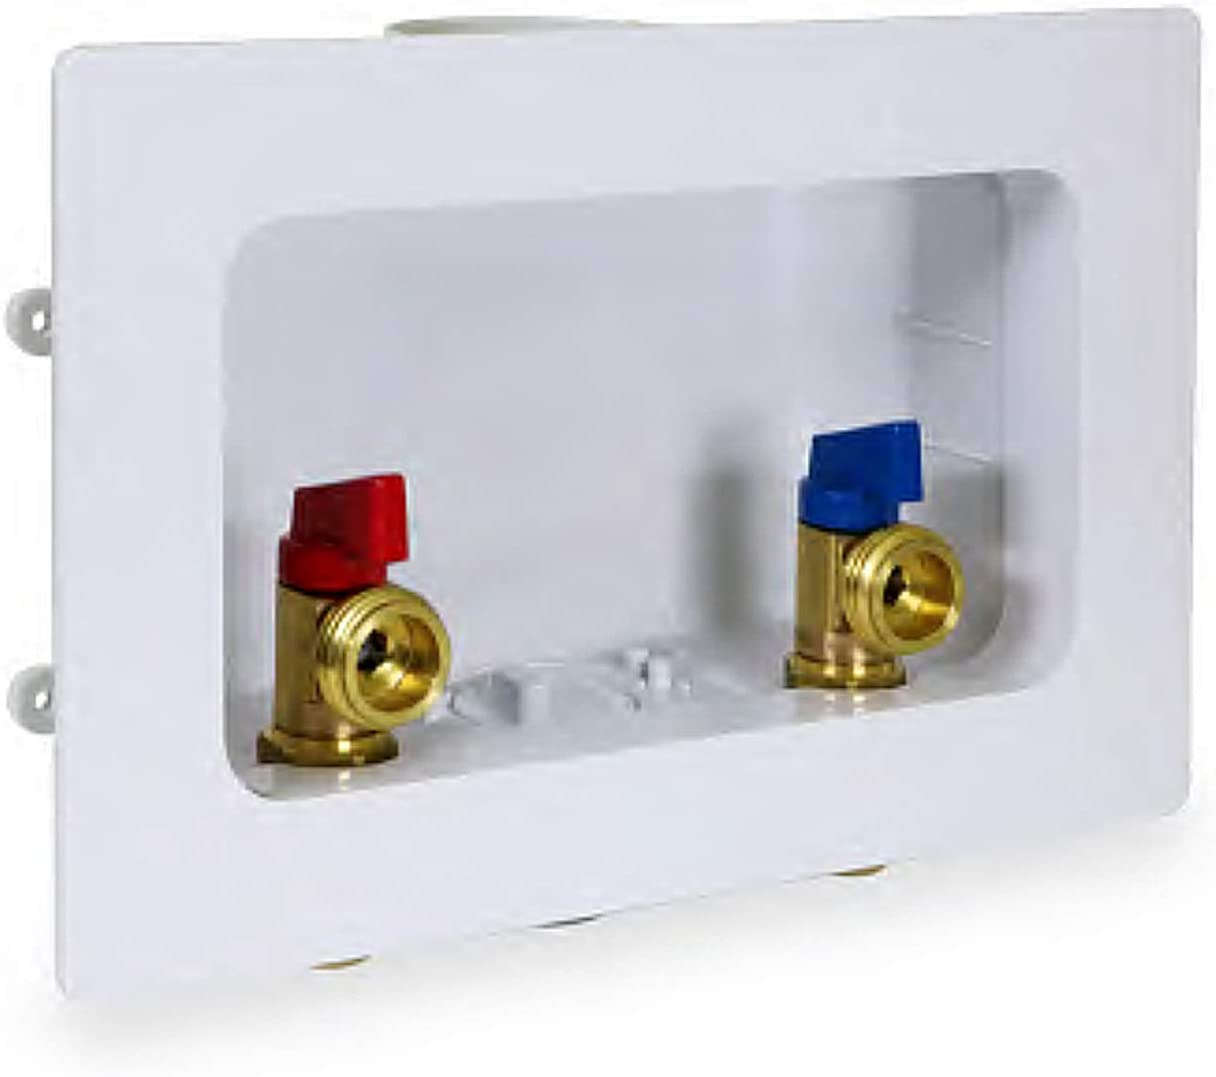 Highcraft TC300-D Max 61% OFF Washing Machine Outlet Box C 1 2'' Valves Max 64% OFF with